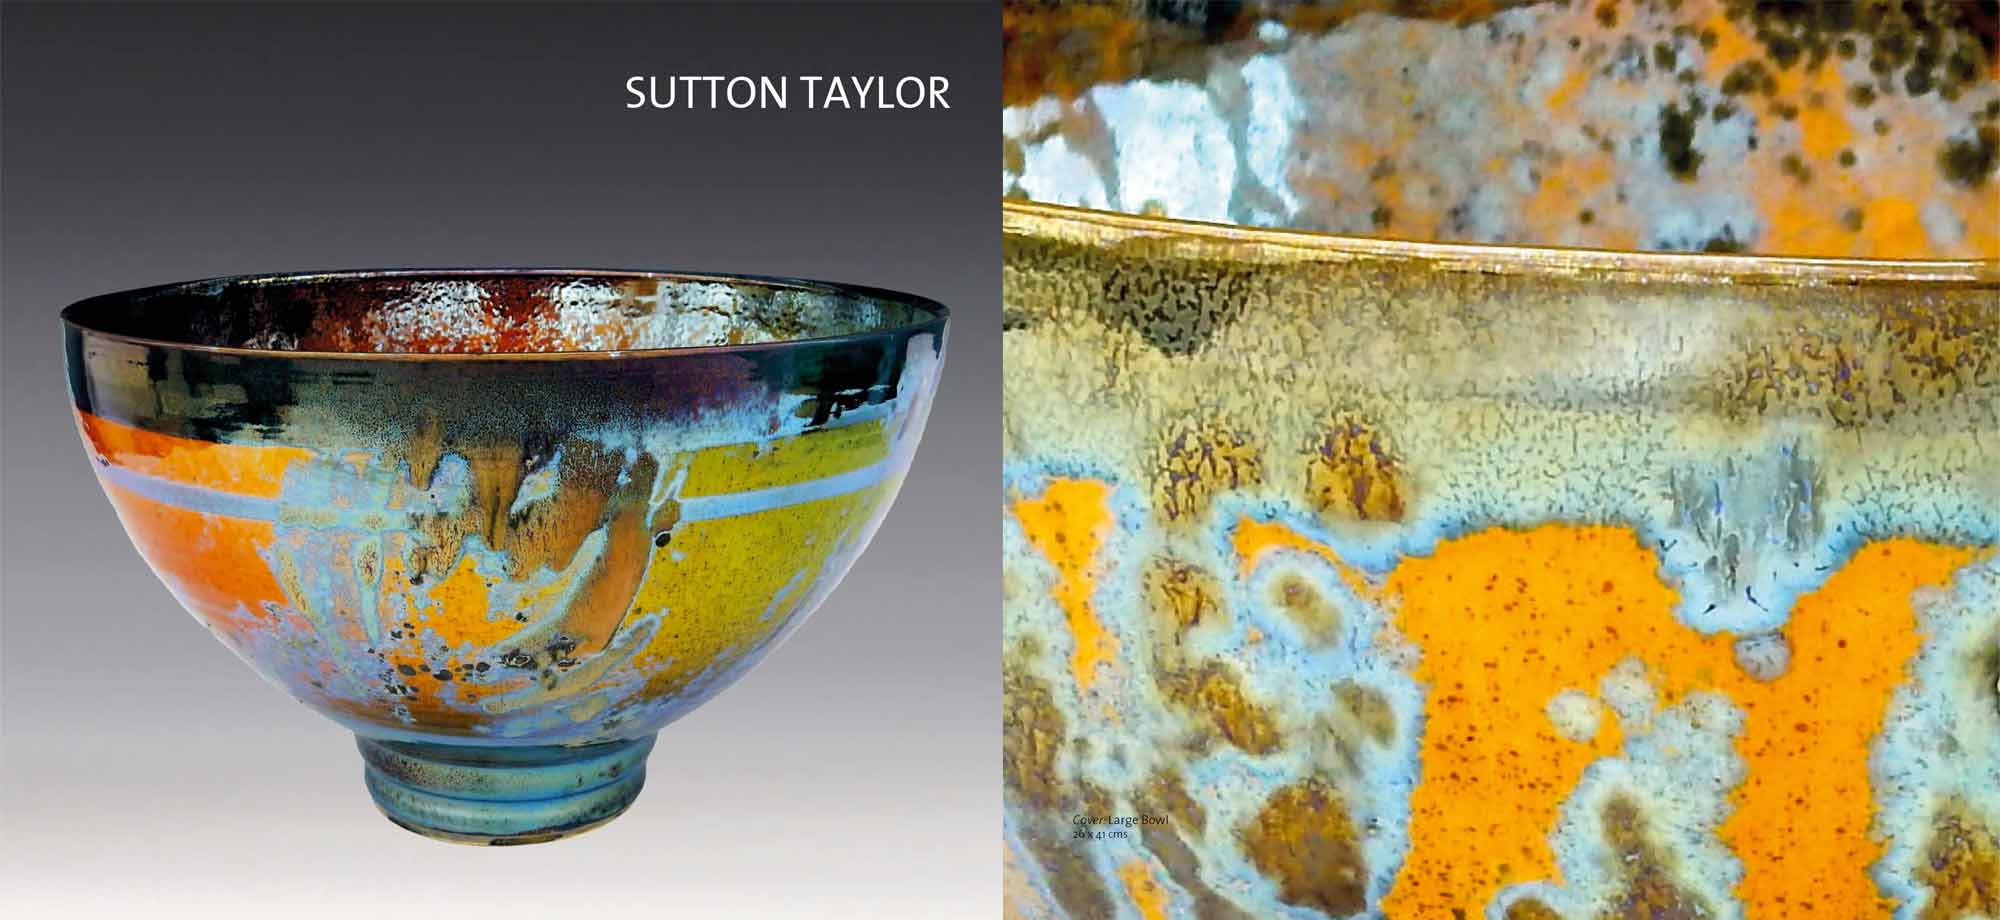 Sutton Taylor publication